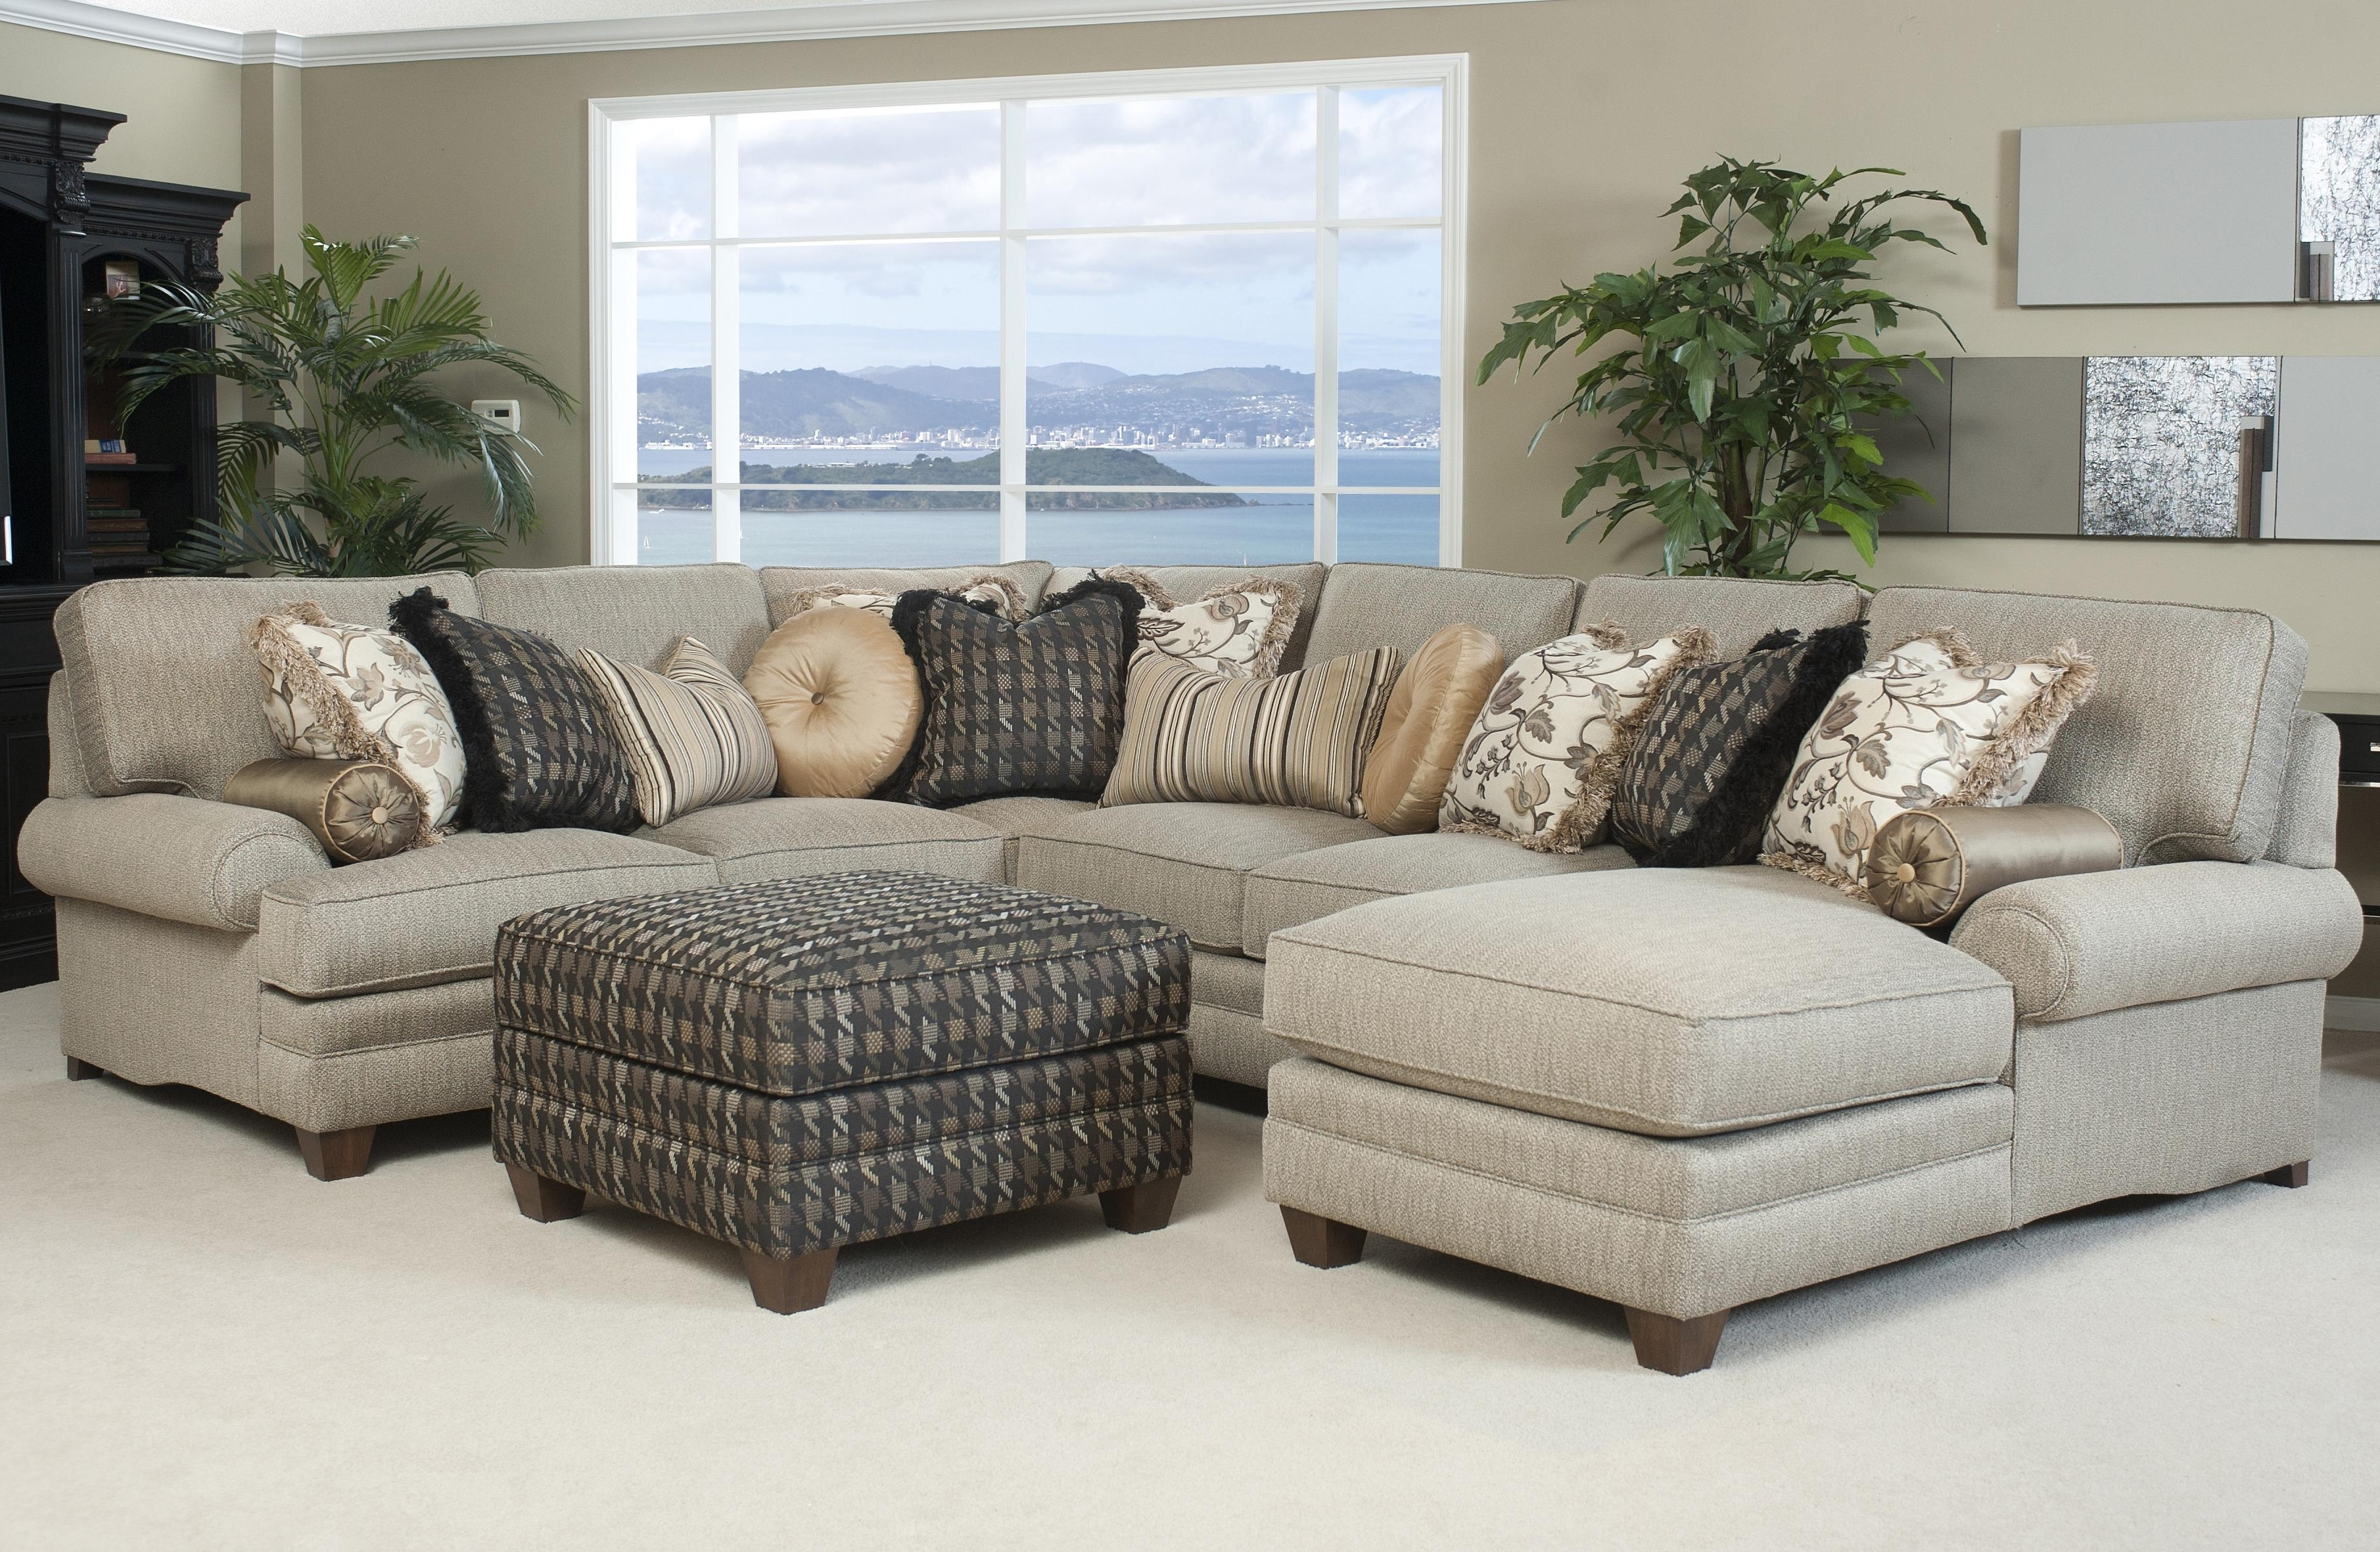 Well Known Most Comfortable Leather Sectional Sofa • Leather Sofa With Regard To Comfy Sectional Sofas (Gallery 4 of 20)